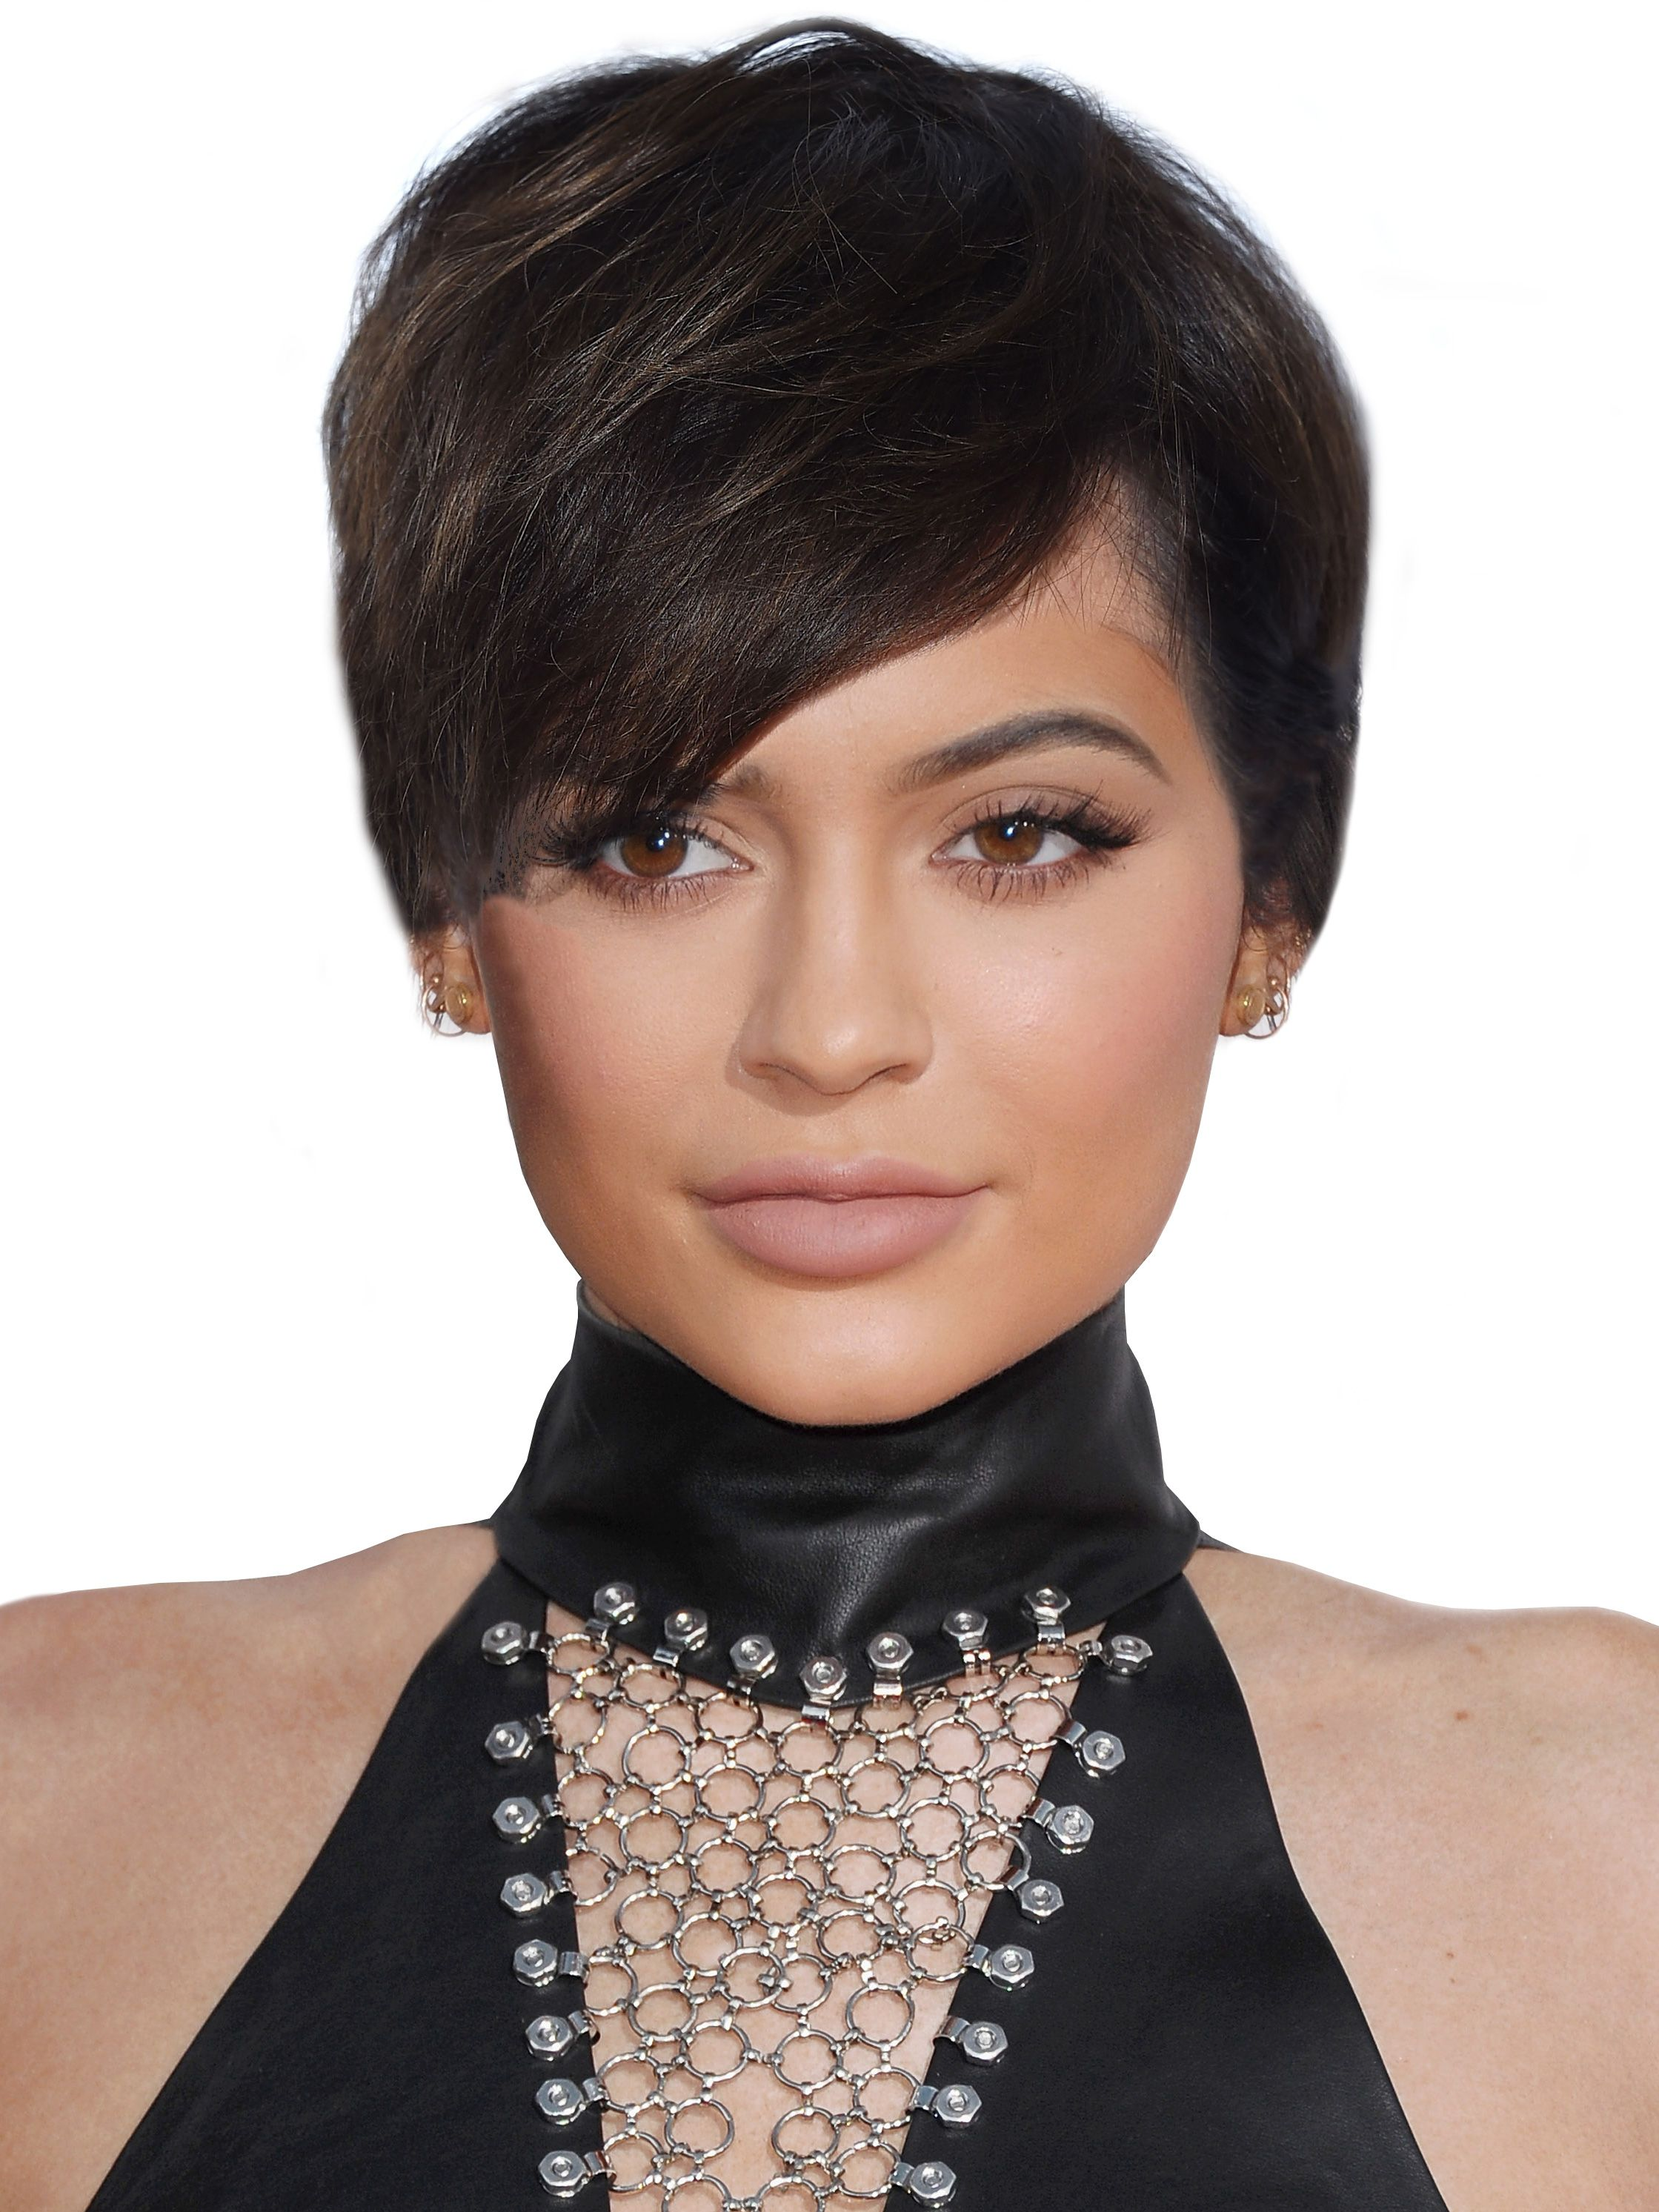 Kylie Jenner Says She Wants To Try A Pixie Haircut People